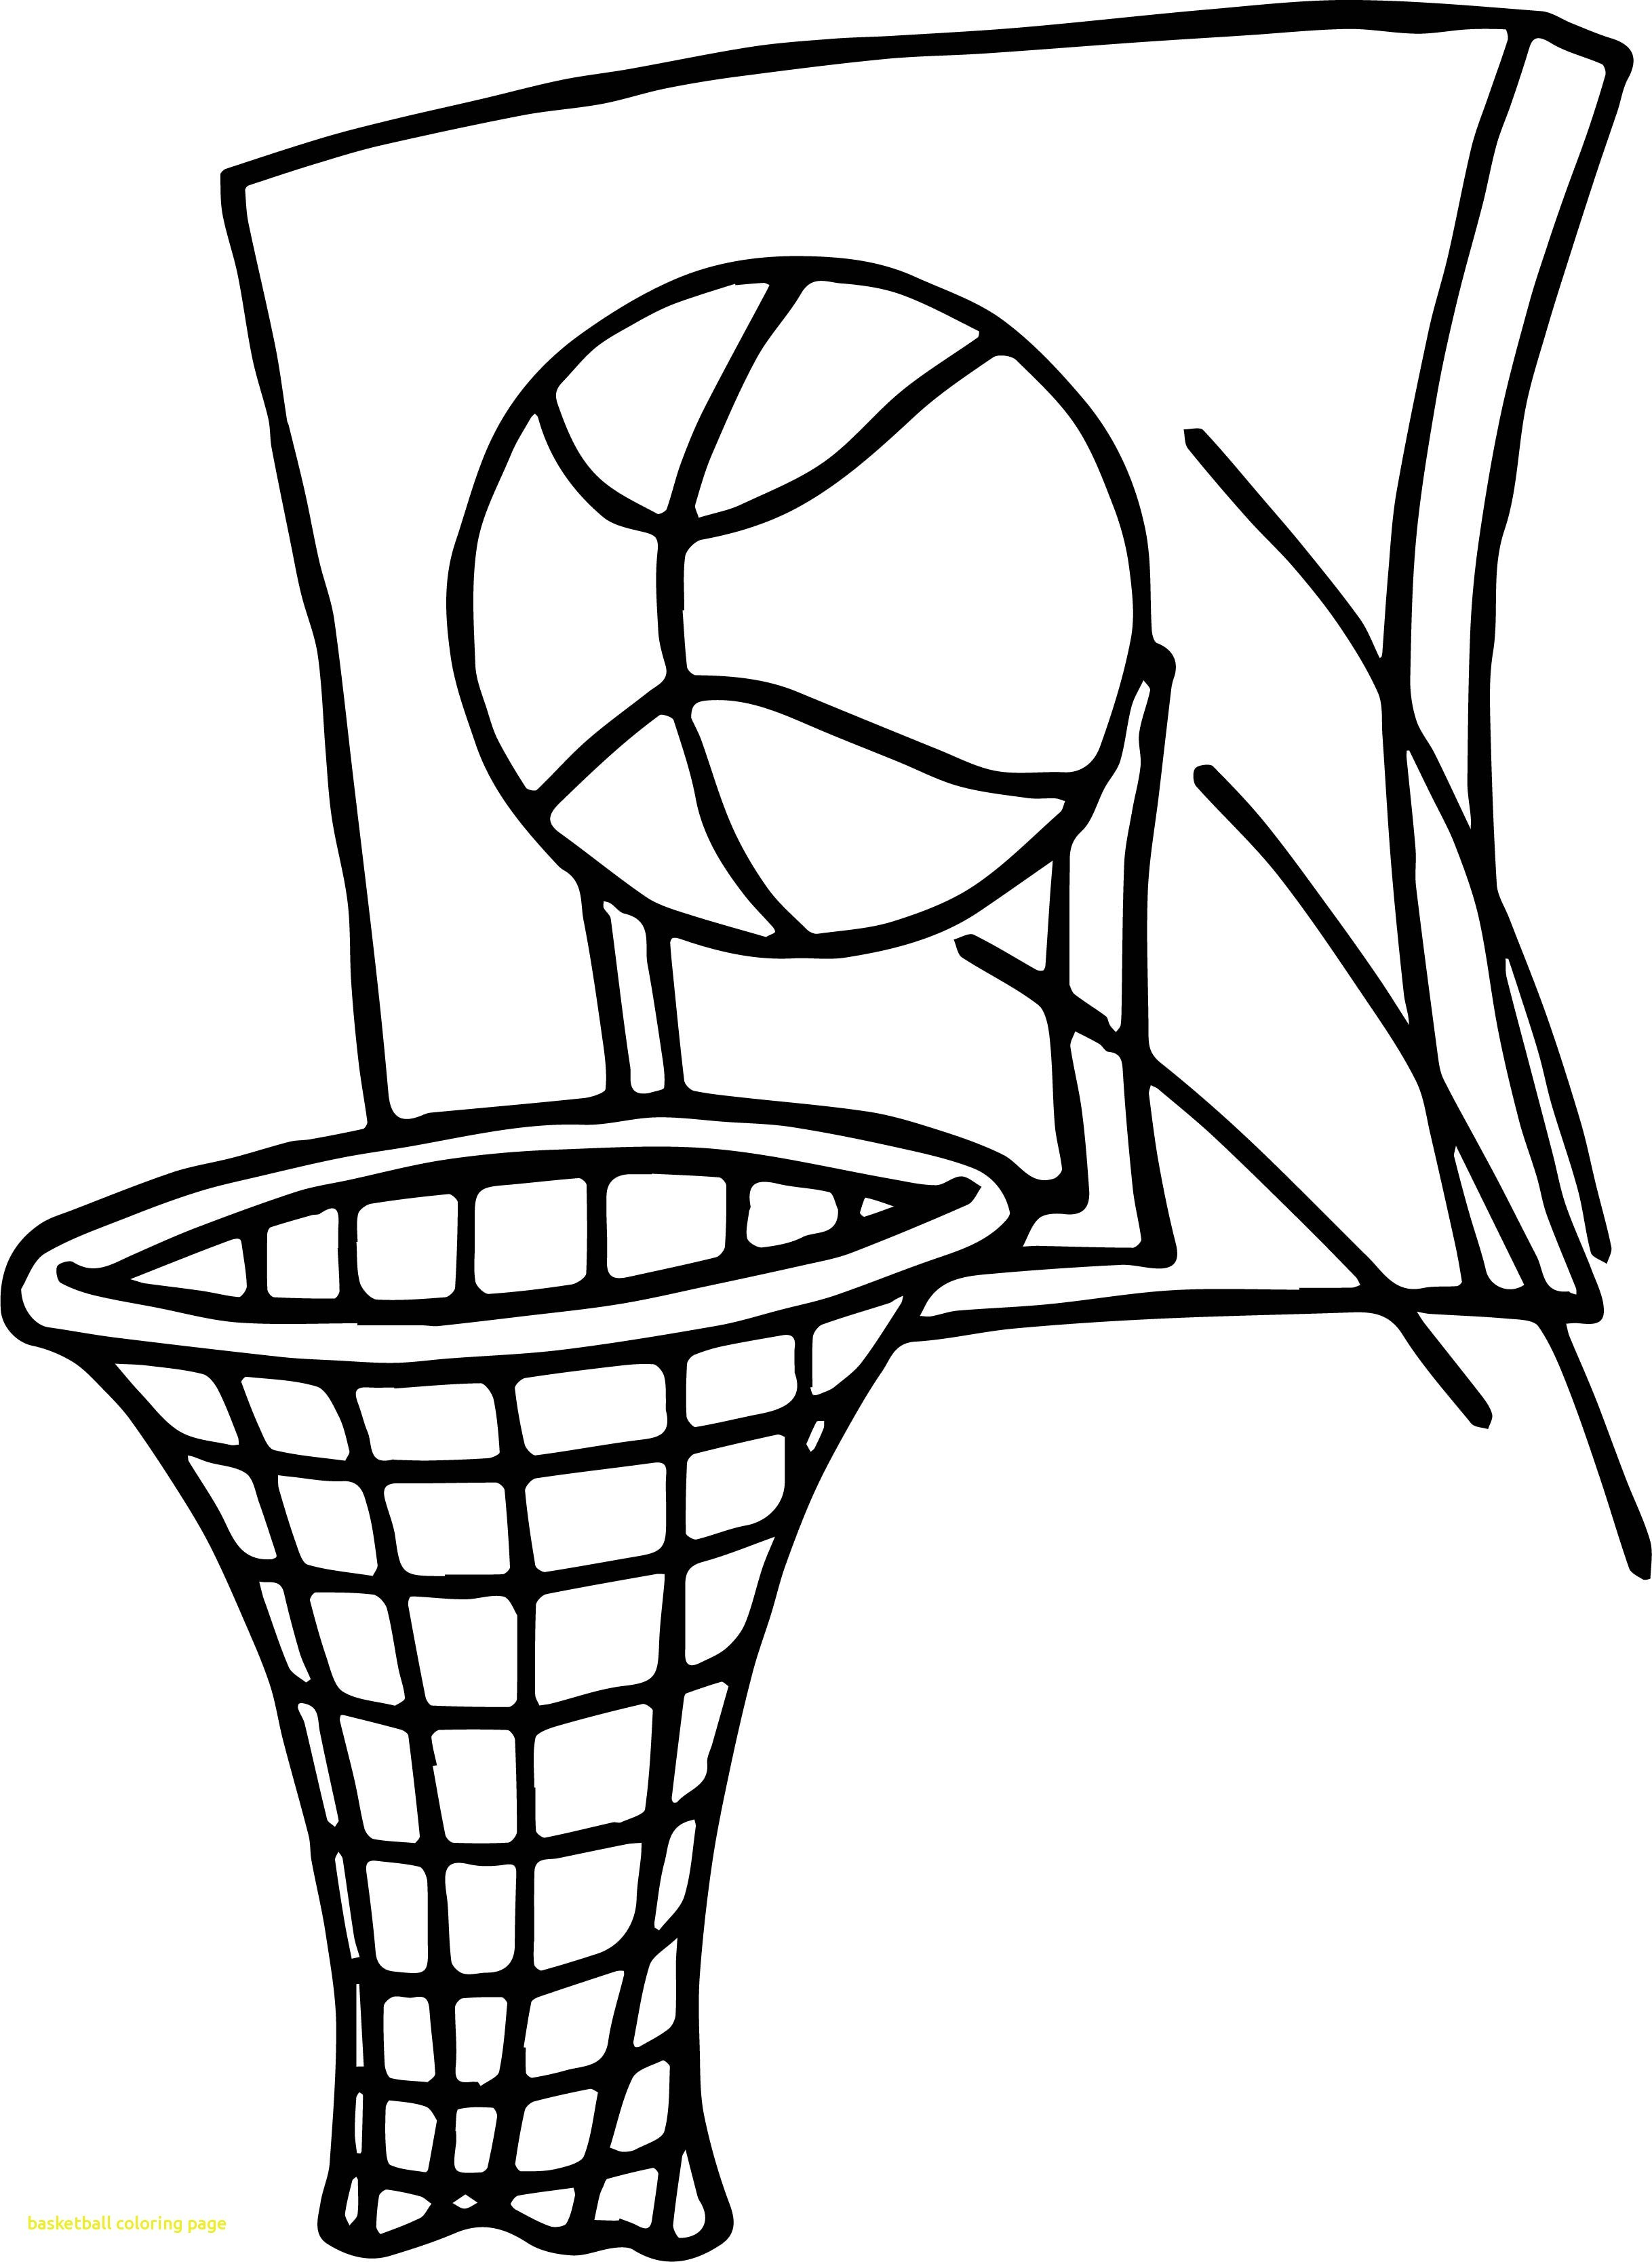 2436x3335 Sure Fire Basketball Coloring Pages To Print Get This Free 920519